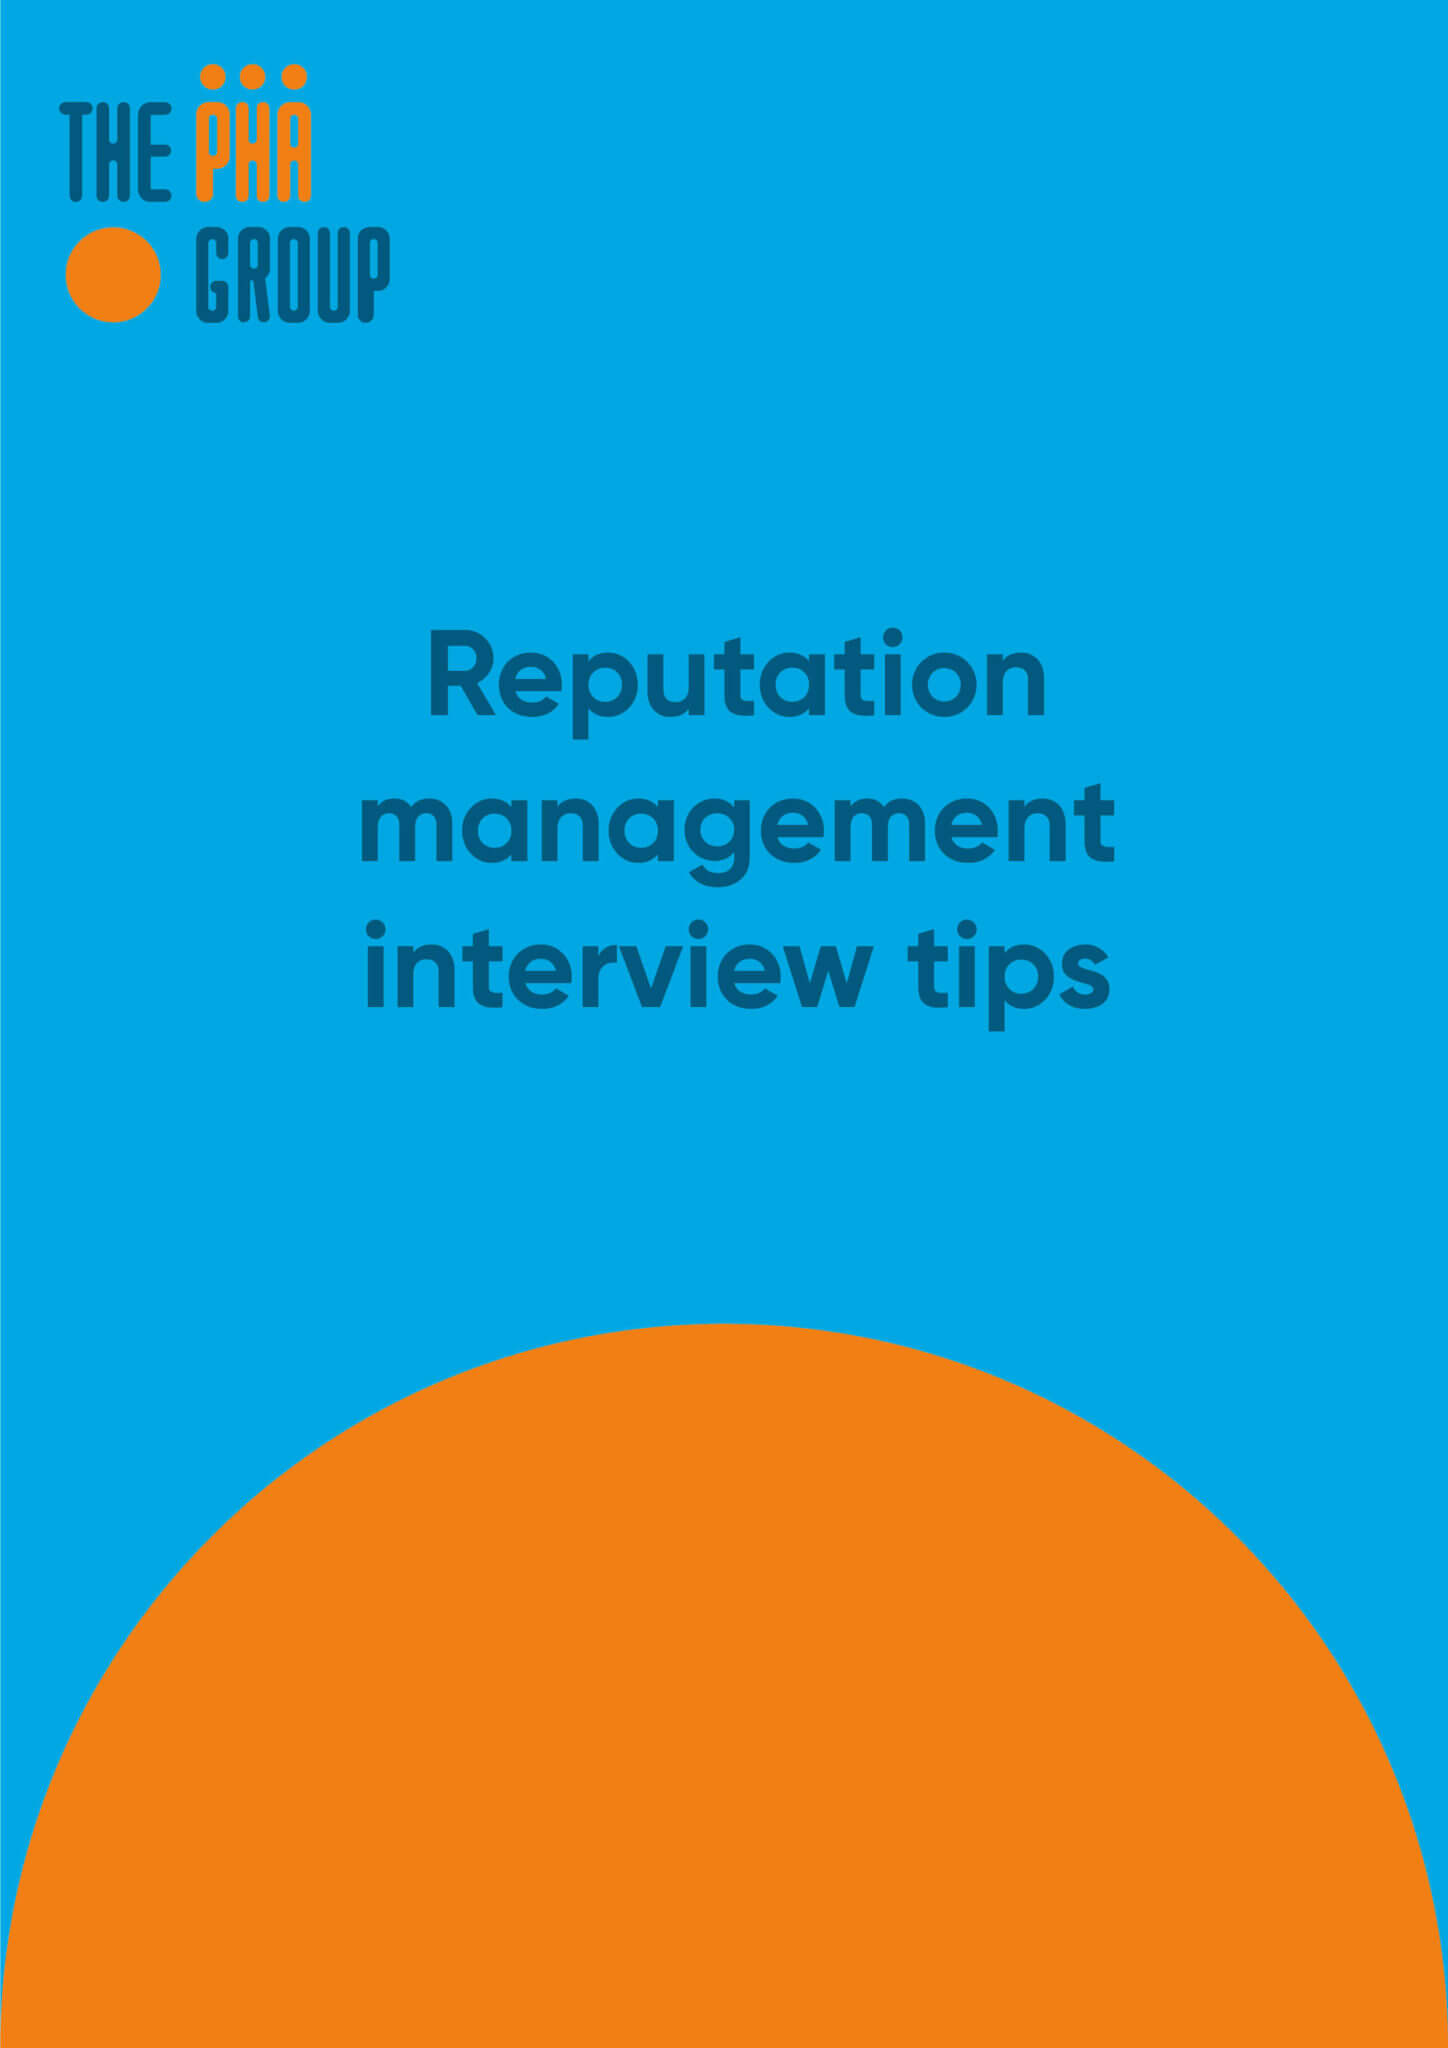 Reputation management interview tips